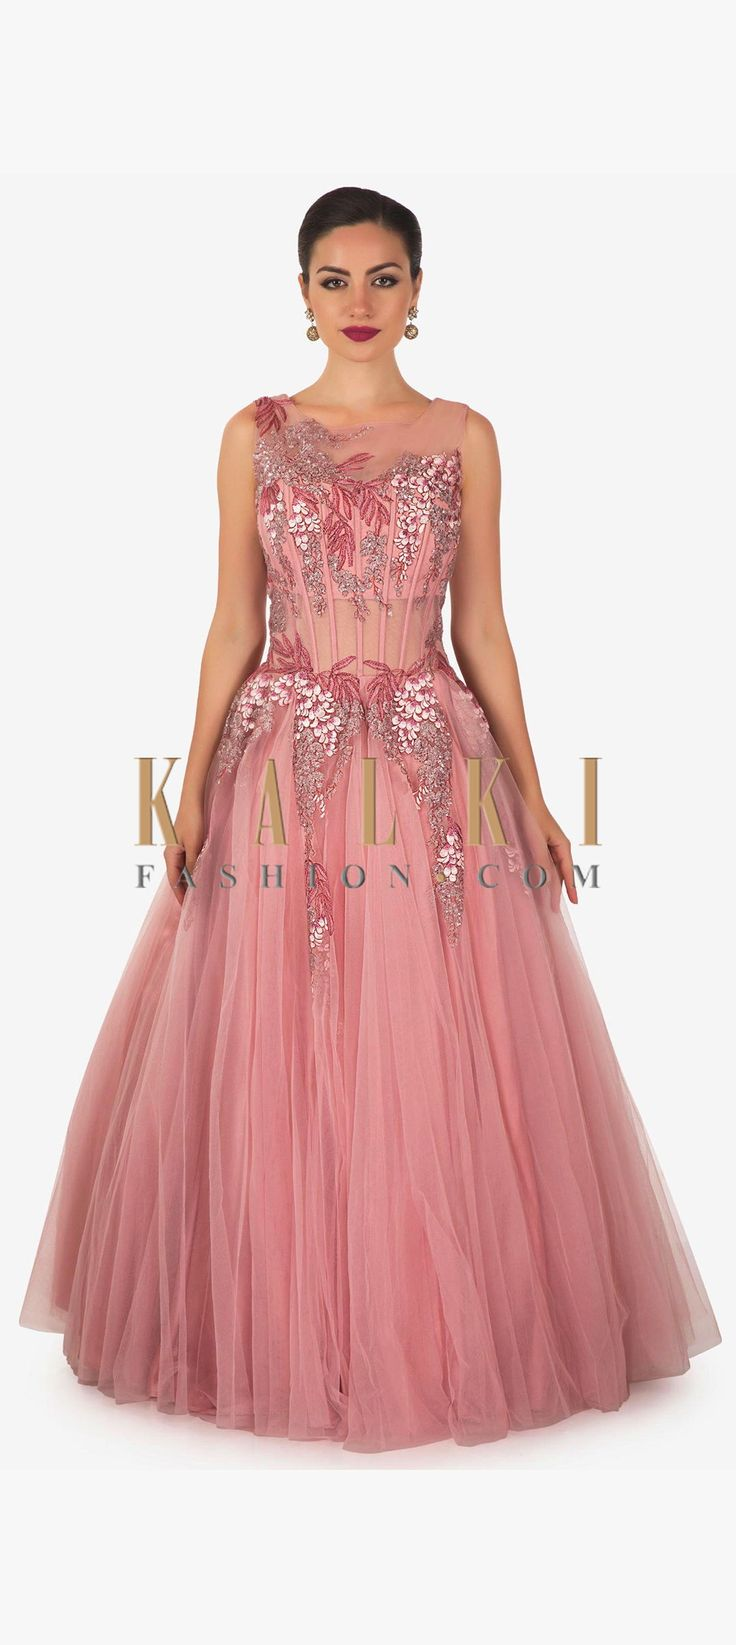 19 best dress images on Pinterest | Ropa india, Traje indio y Alta ...